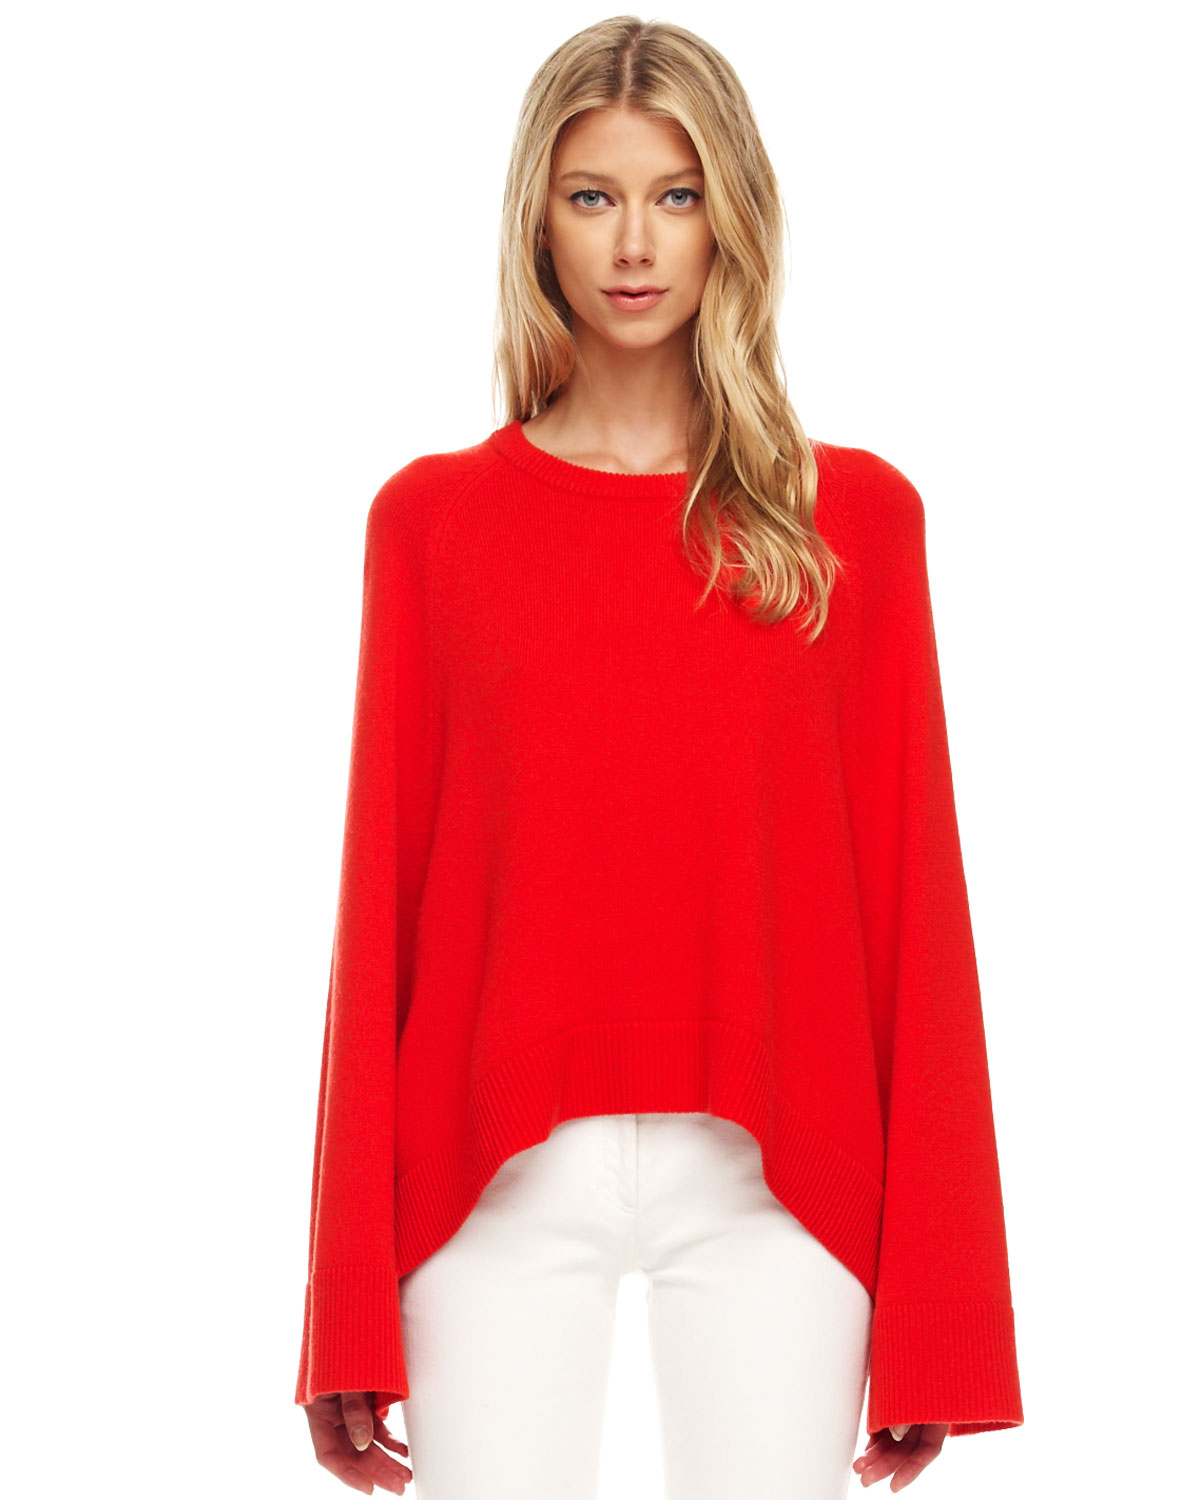 Michael kors Arch hem Cashmere Sweater in Red | Lyst